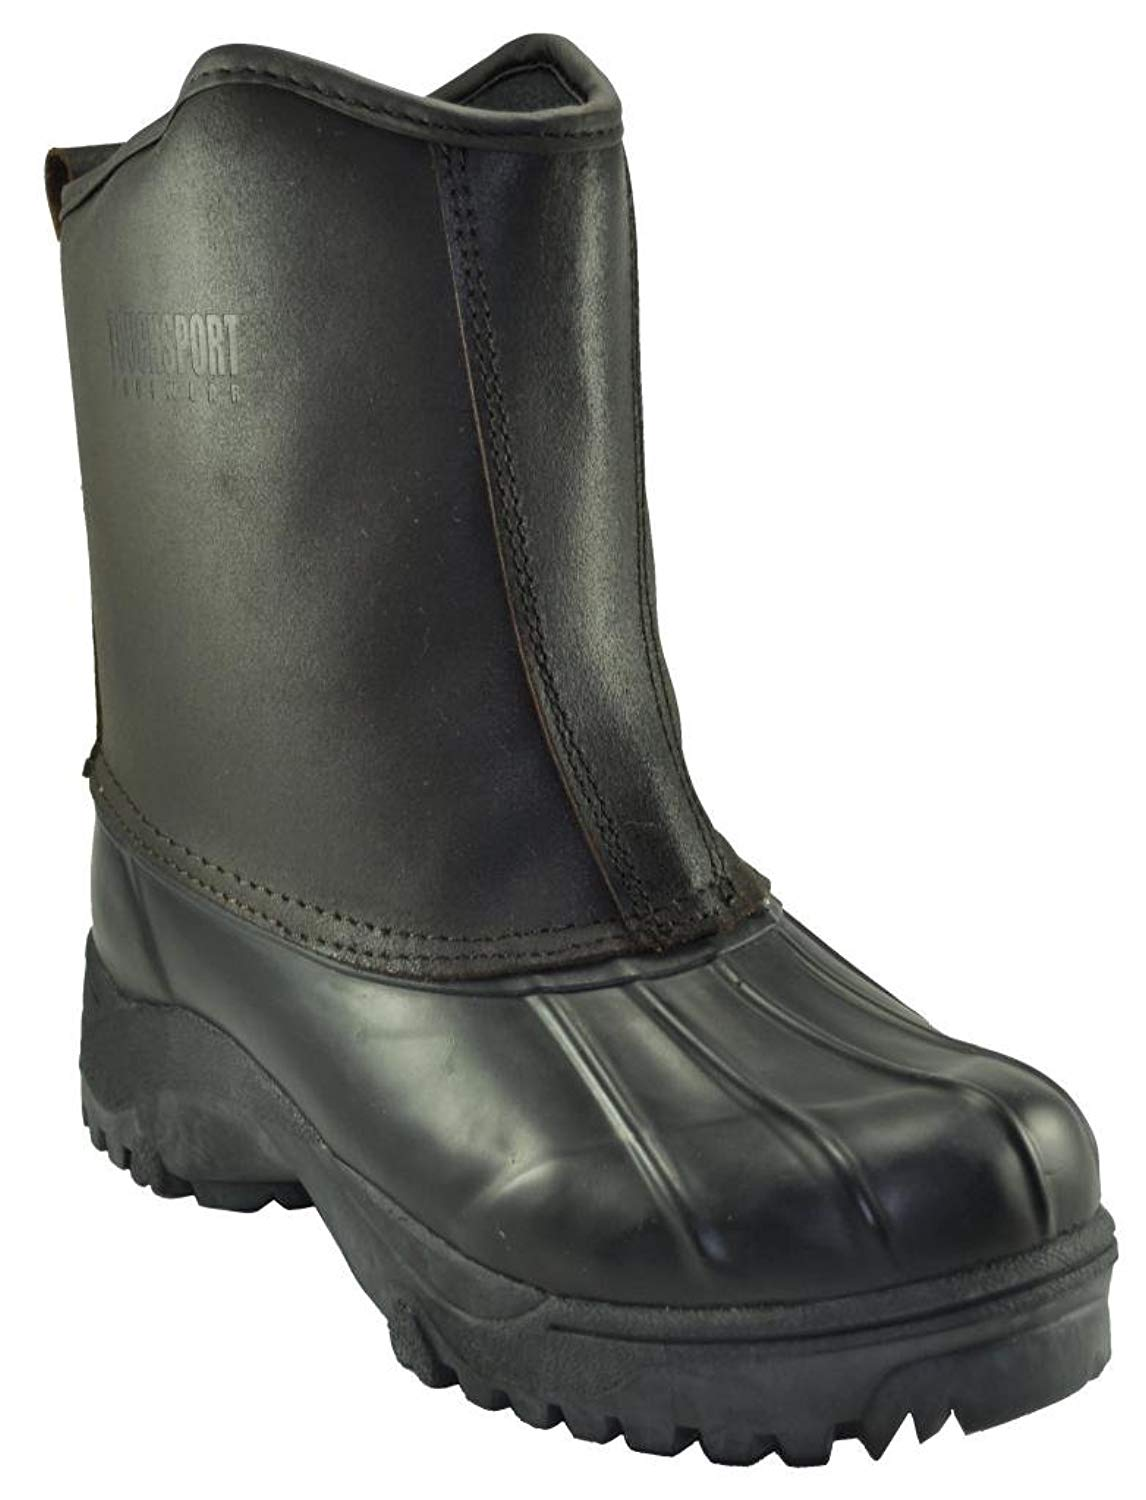 "Men's 10"" High Pull On Genuine Leather Upper Dupont Thermolite Insulated Winter Boot"